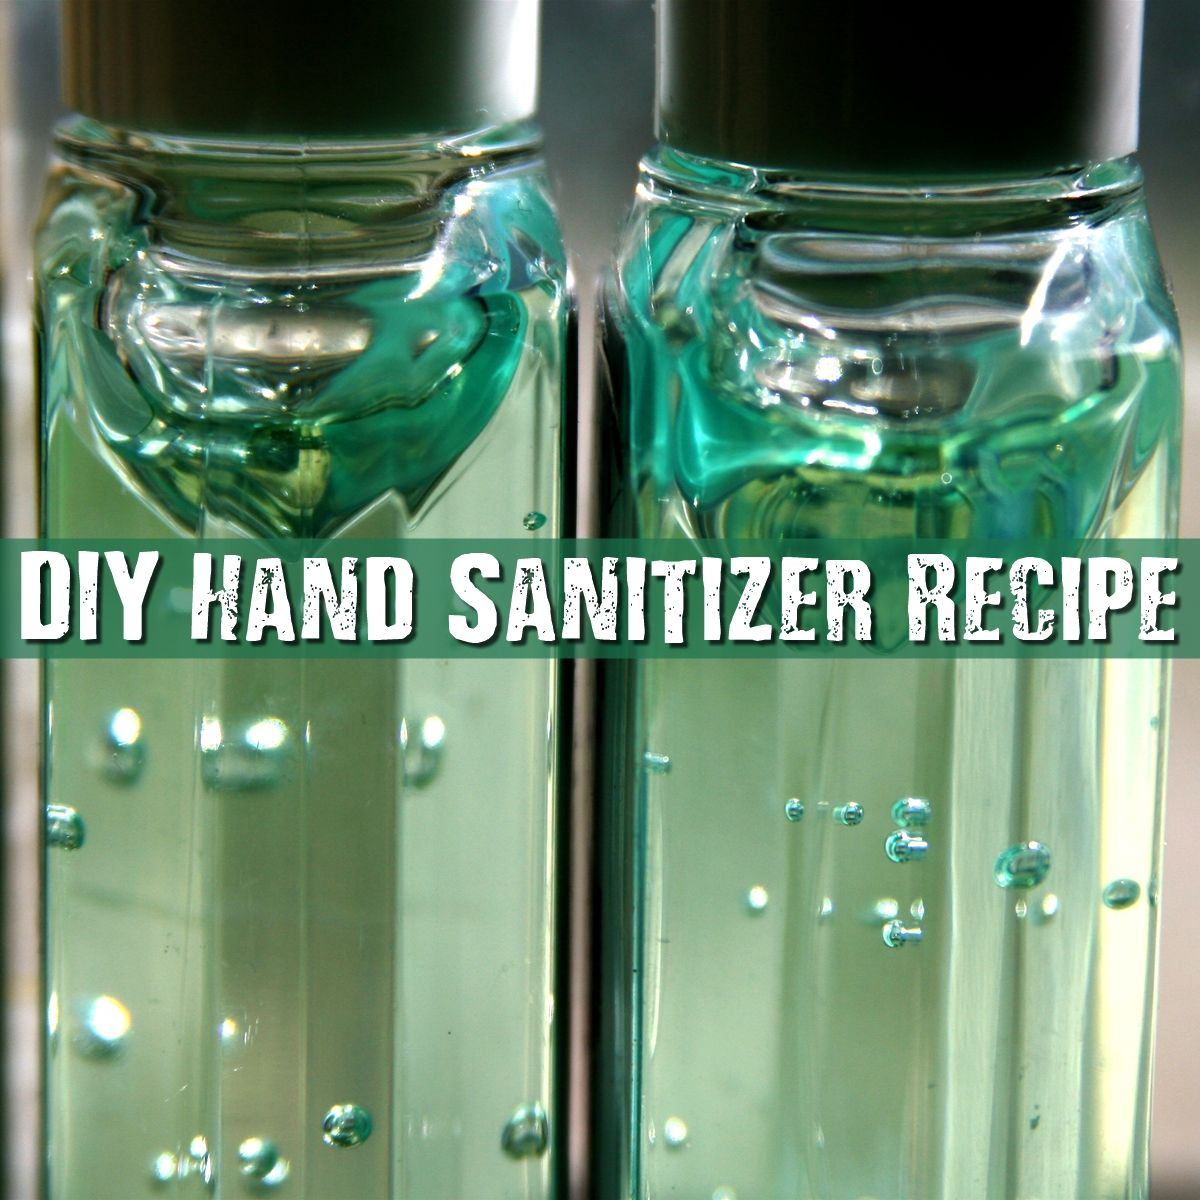 Diy Sanitizer For Surfaces And Hands Emergency Preparedness